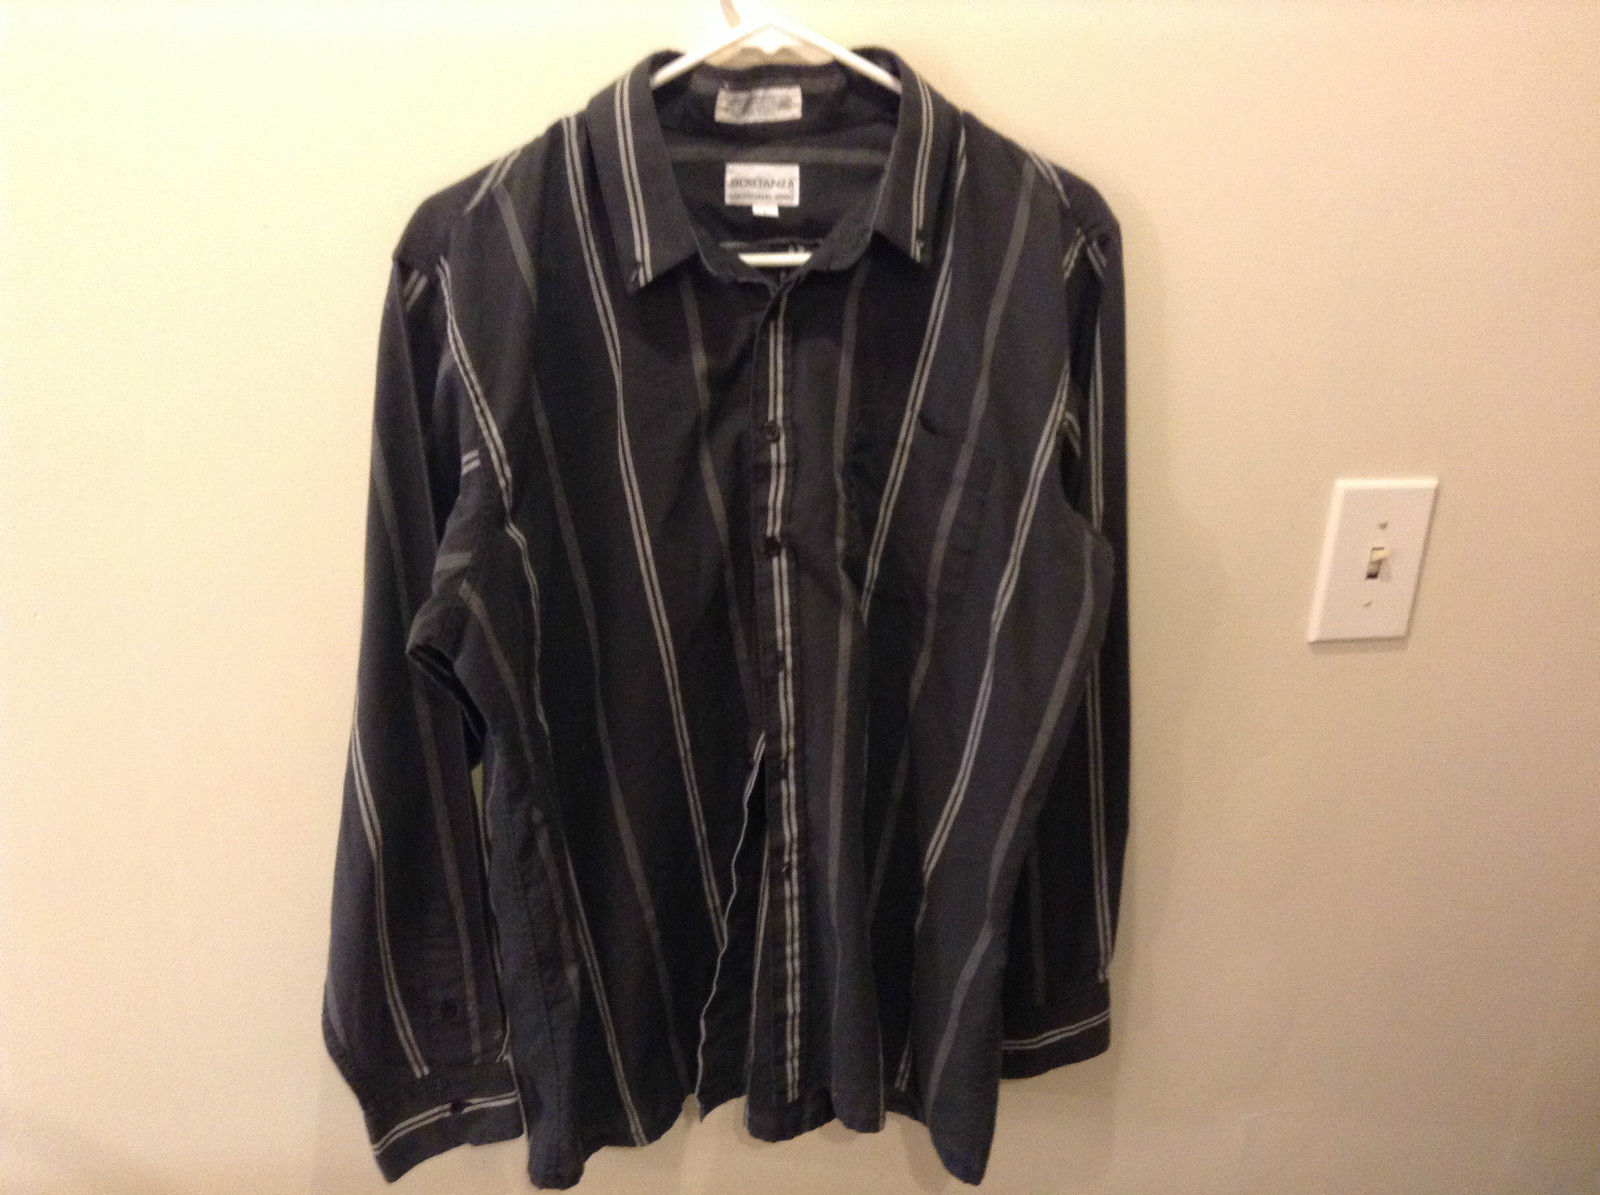 Sostanza Long Sleeve Button Up Dress Shirt Gray with White Stripes Size Large